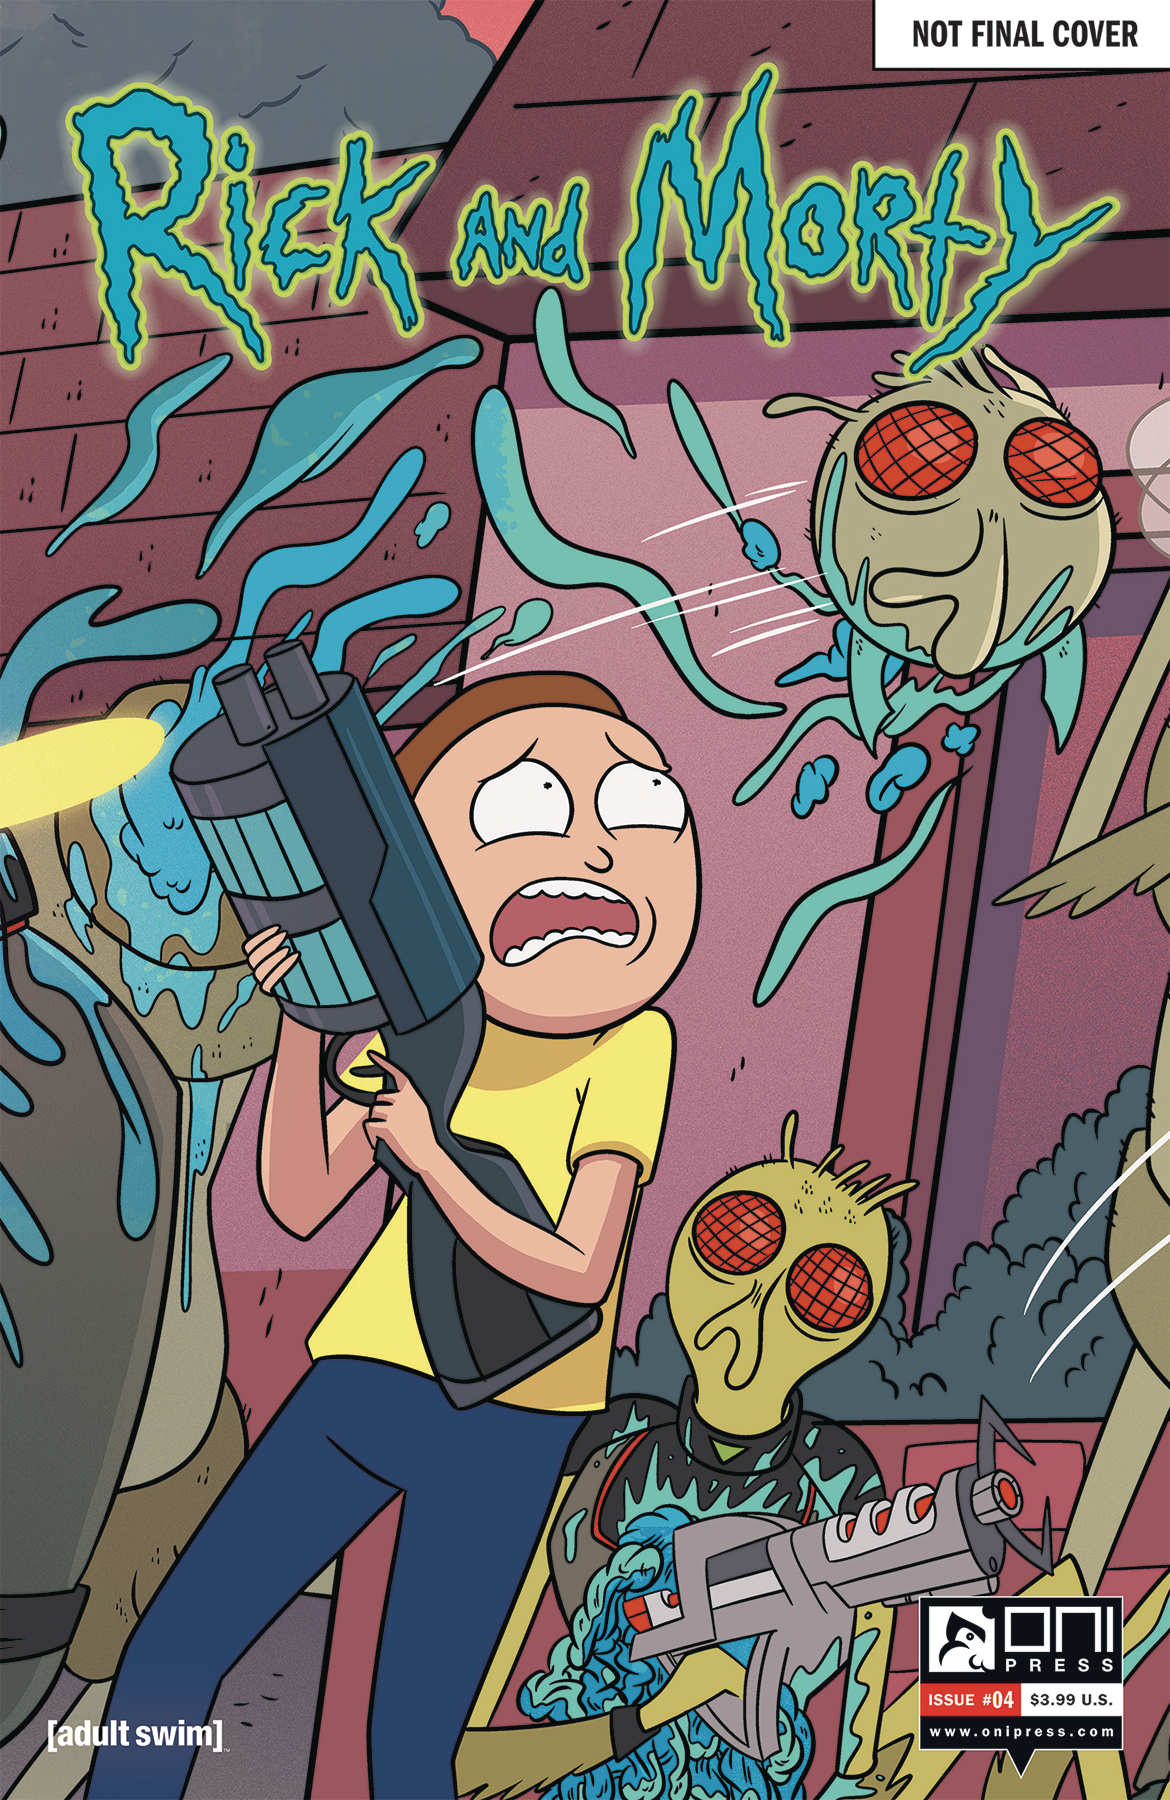 RICK & MORTY #4 50 ISSUES SPECIAL VAR